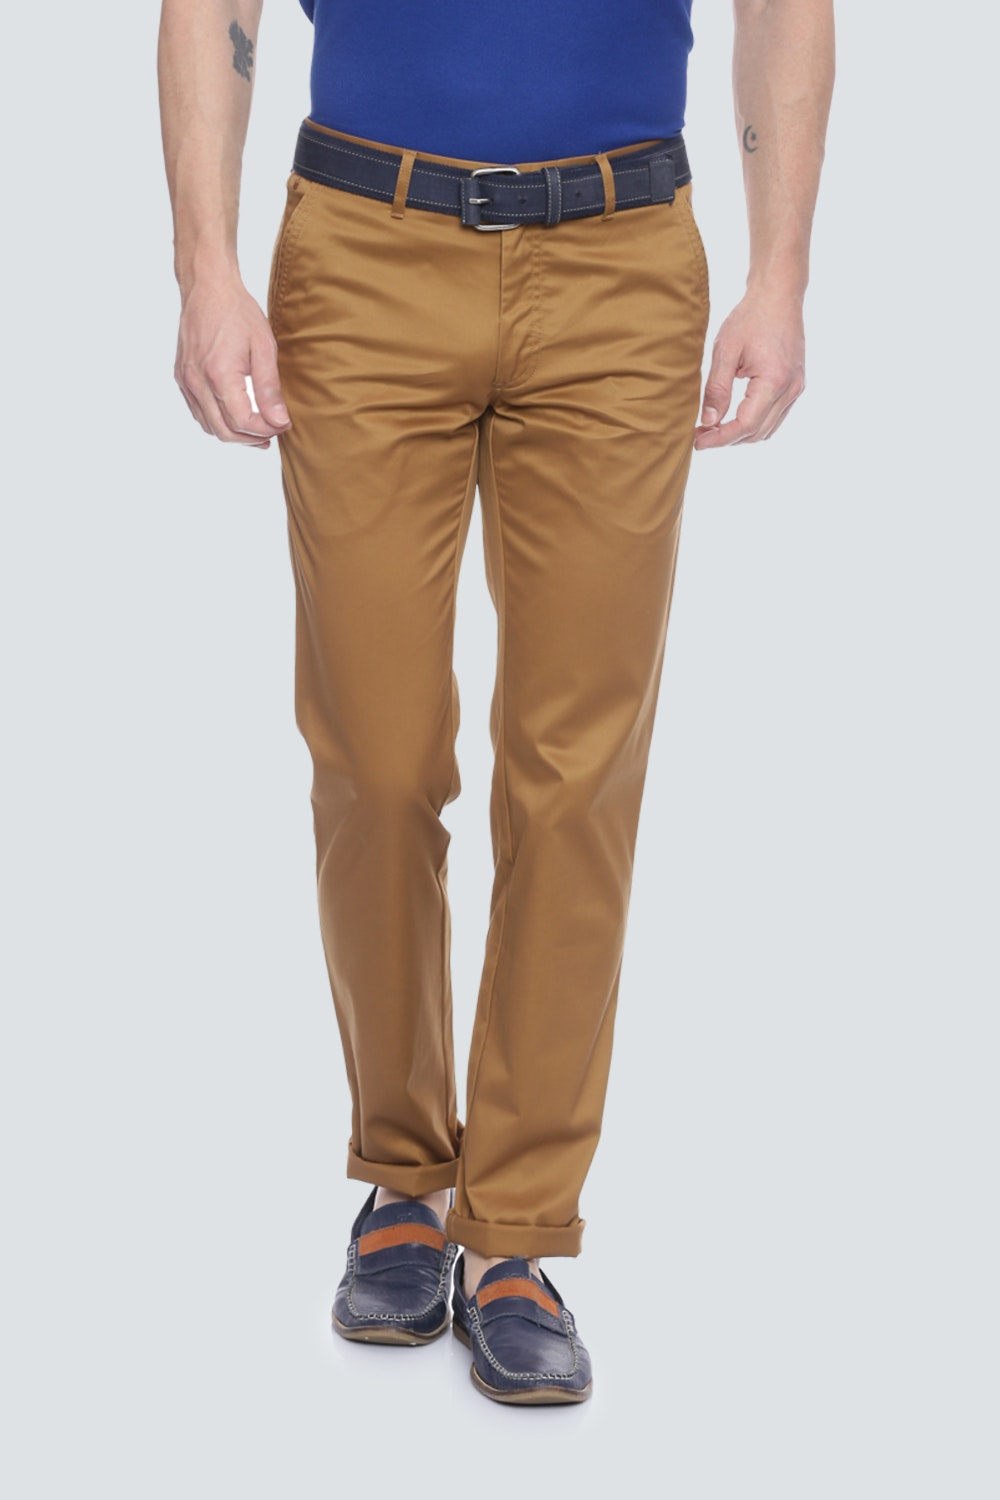 120d27fc99 Louis Philippe Collections - Buy Upto 50% Off Online